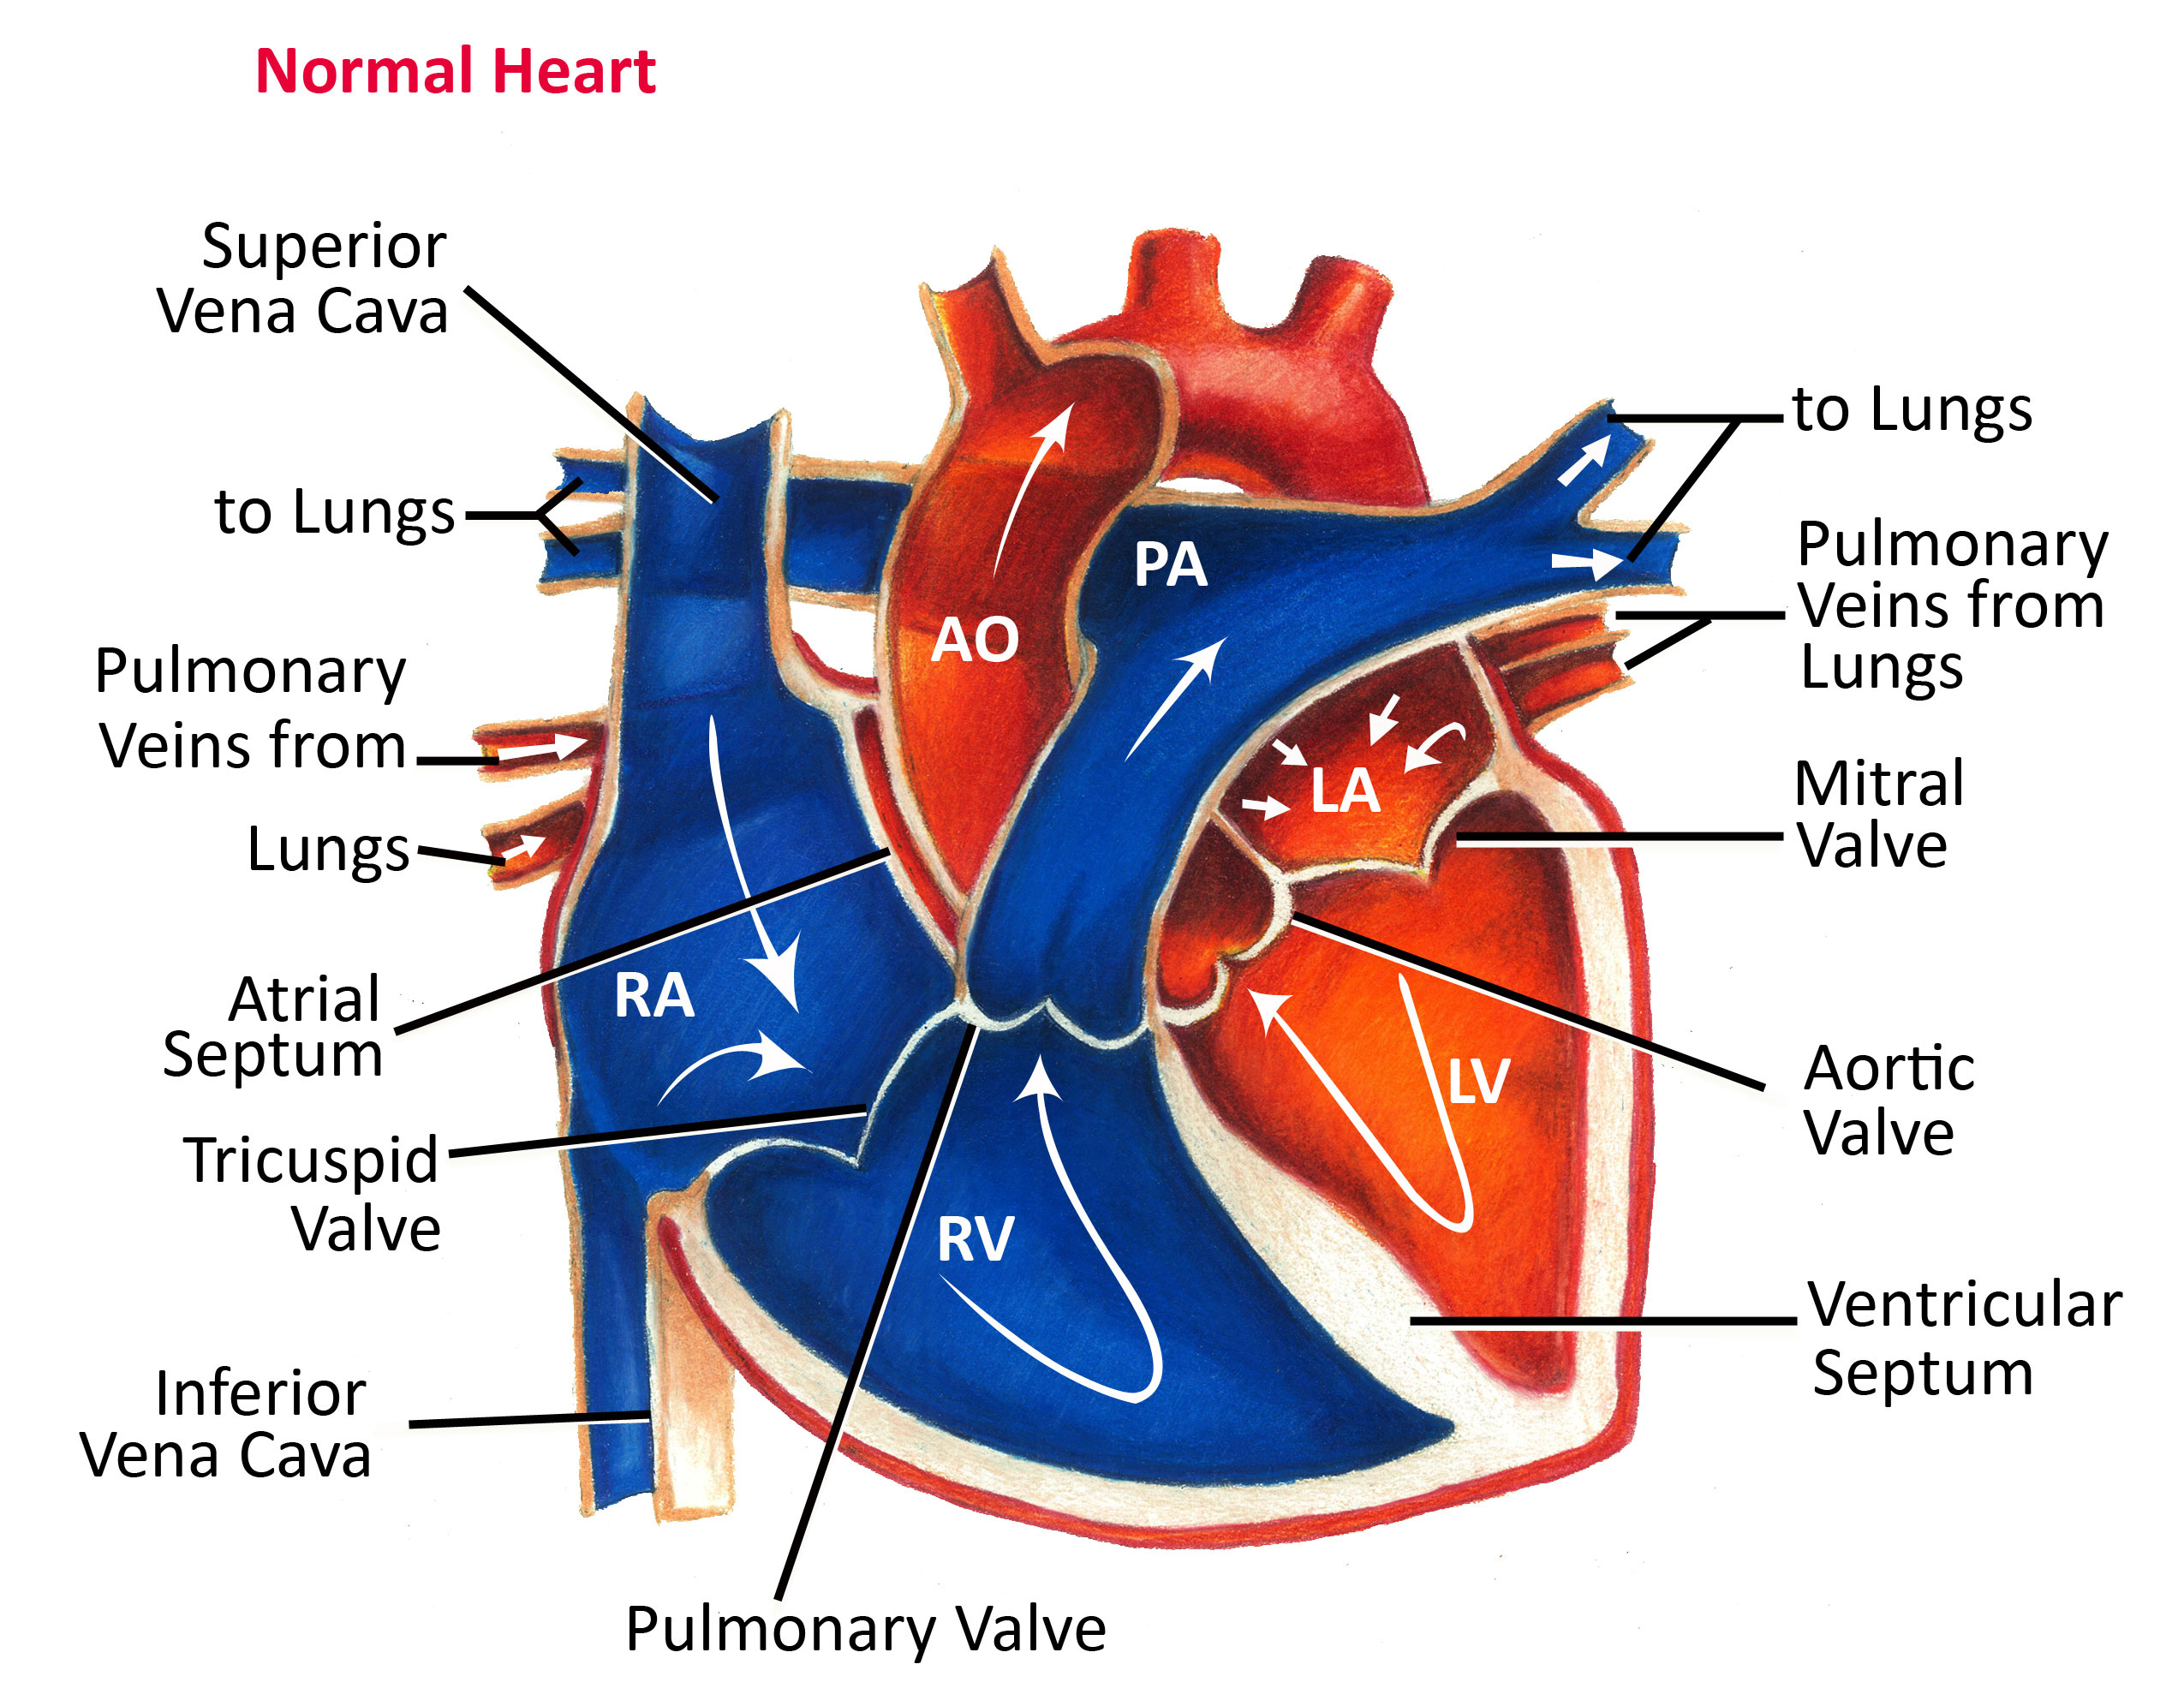 Normal Heart Anatomy And Blood Flow